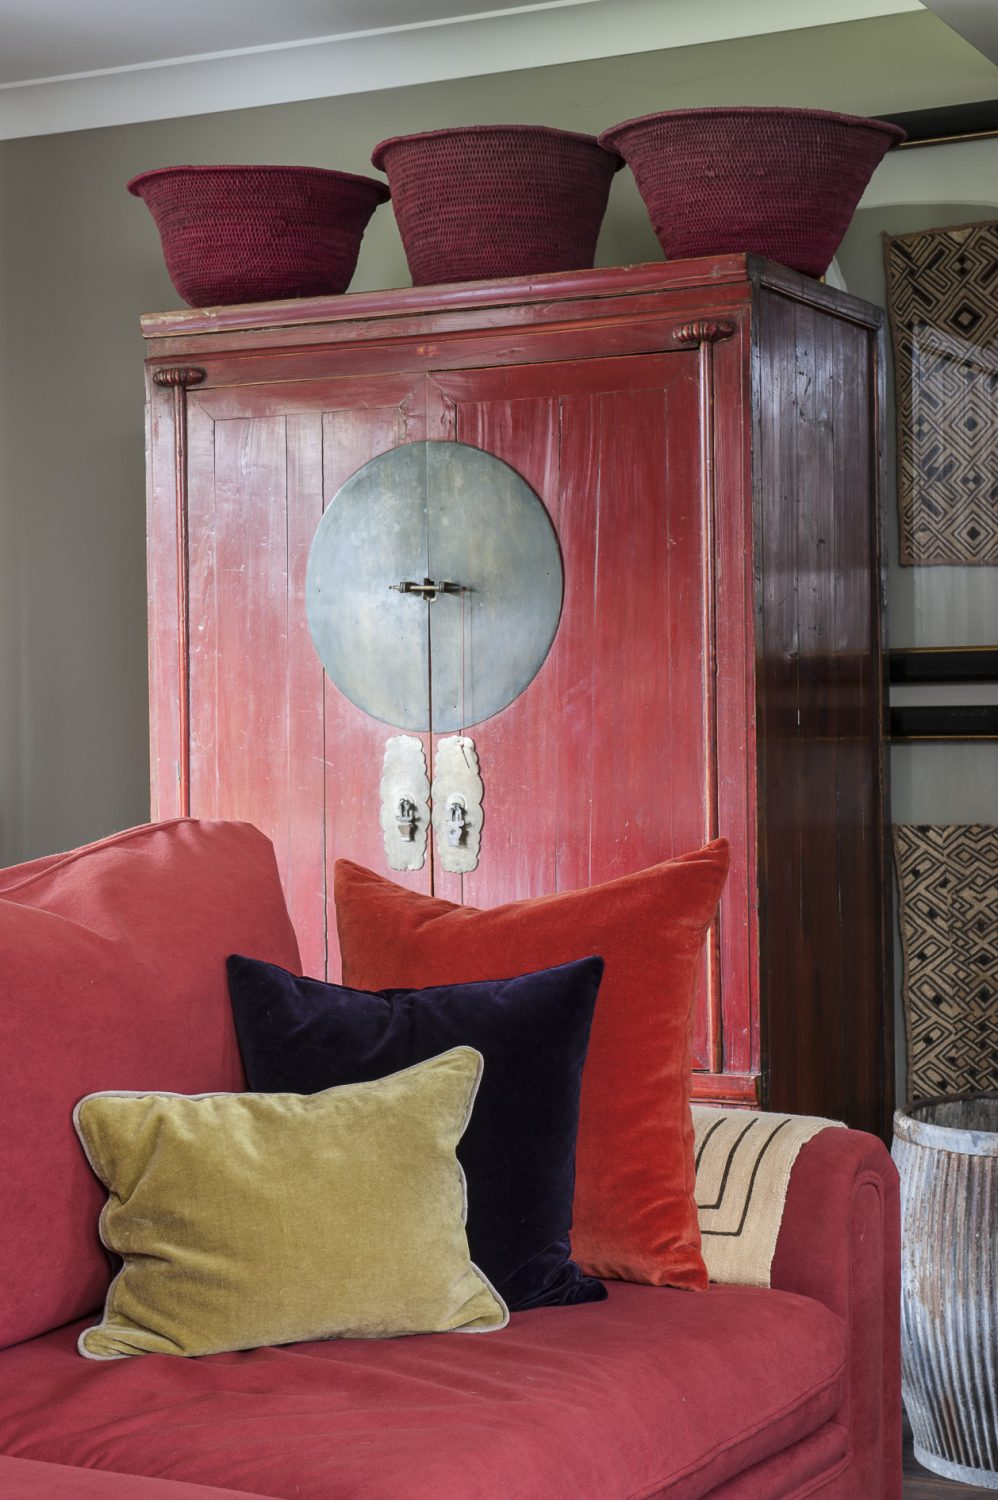 To the left of the woodburner, echoing the vibrant red of the sofa in front, stands a striking Chinese wedding cabinet